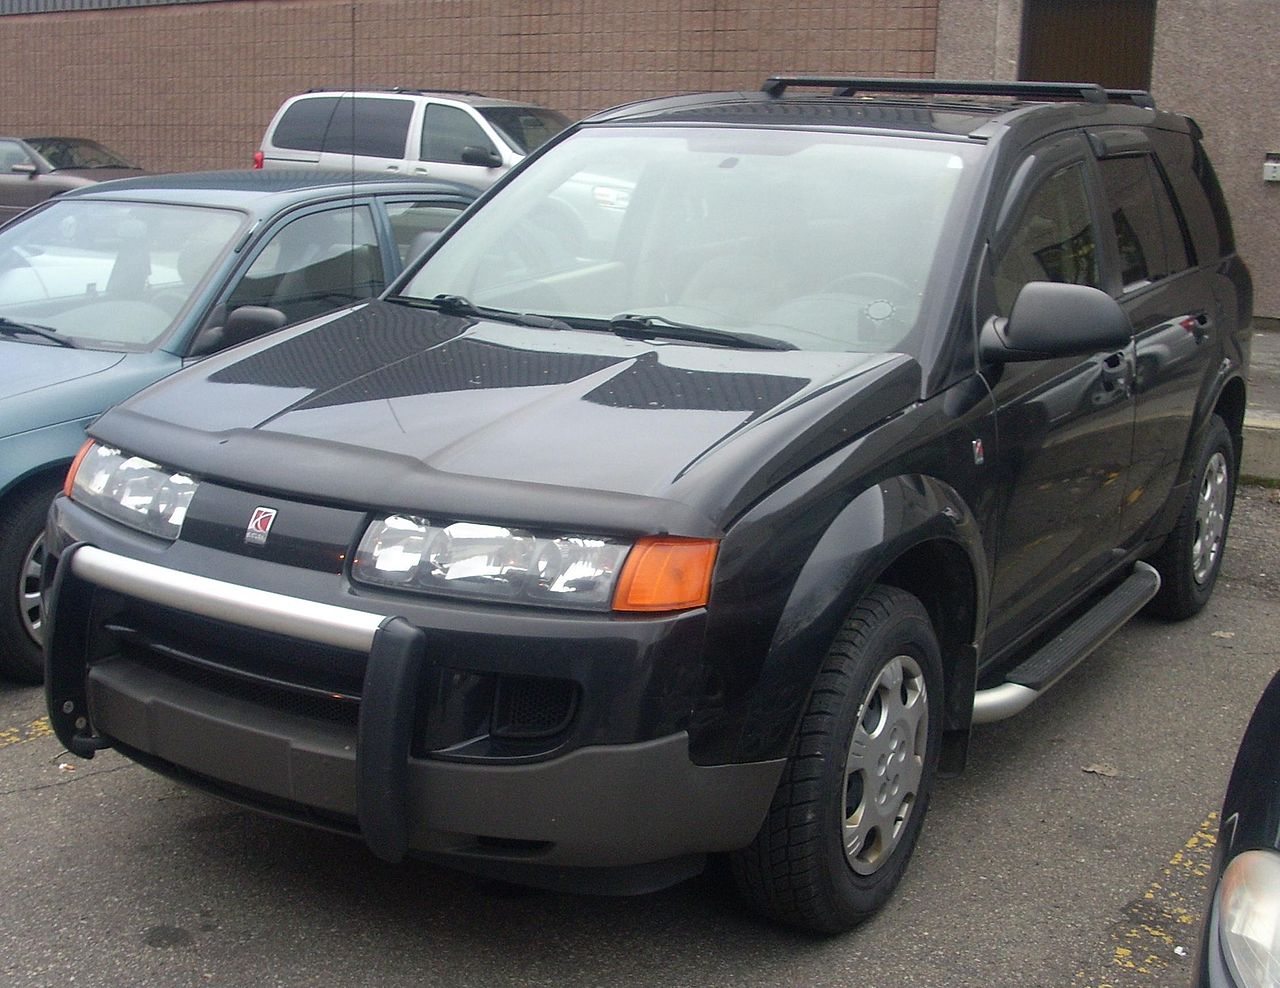 2002 saturn vue information and photos zombiedrive 2002 saturn vue 2 saturn vue 2 vanachro Images